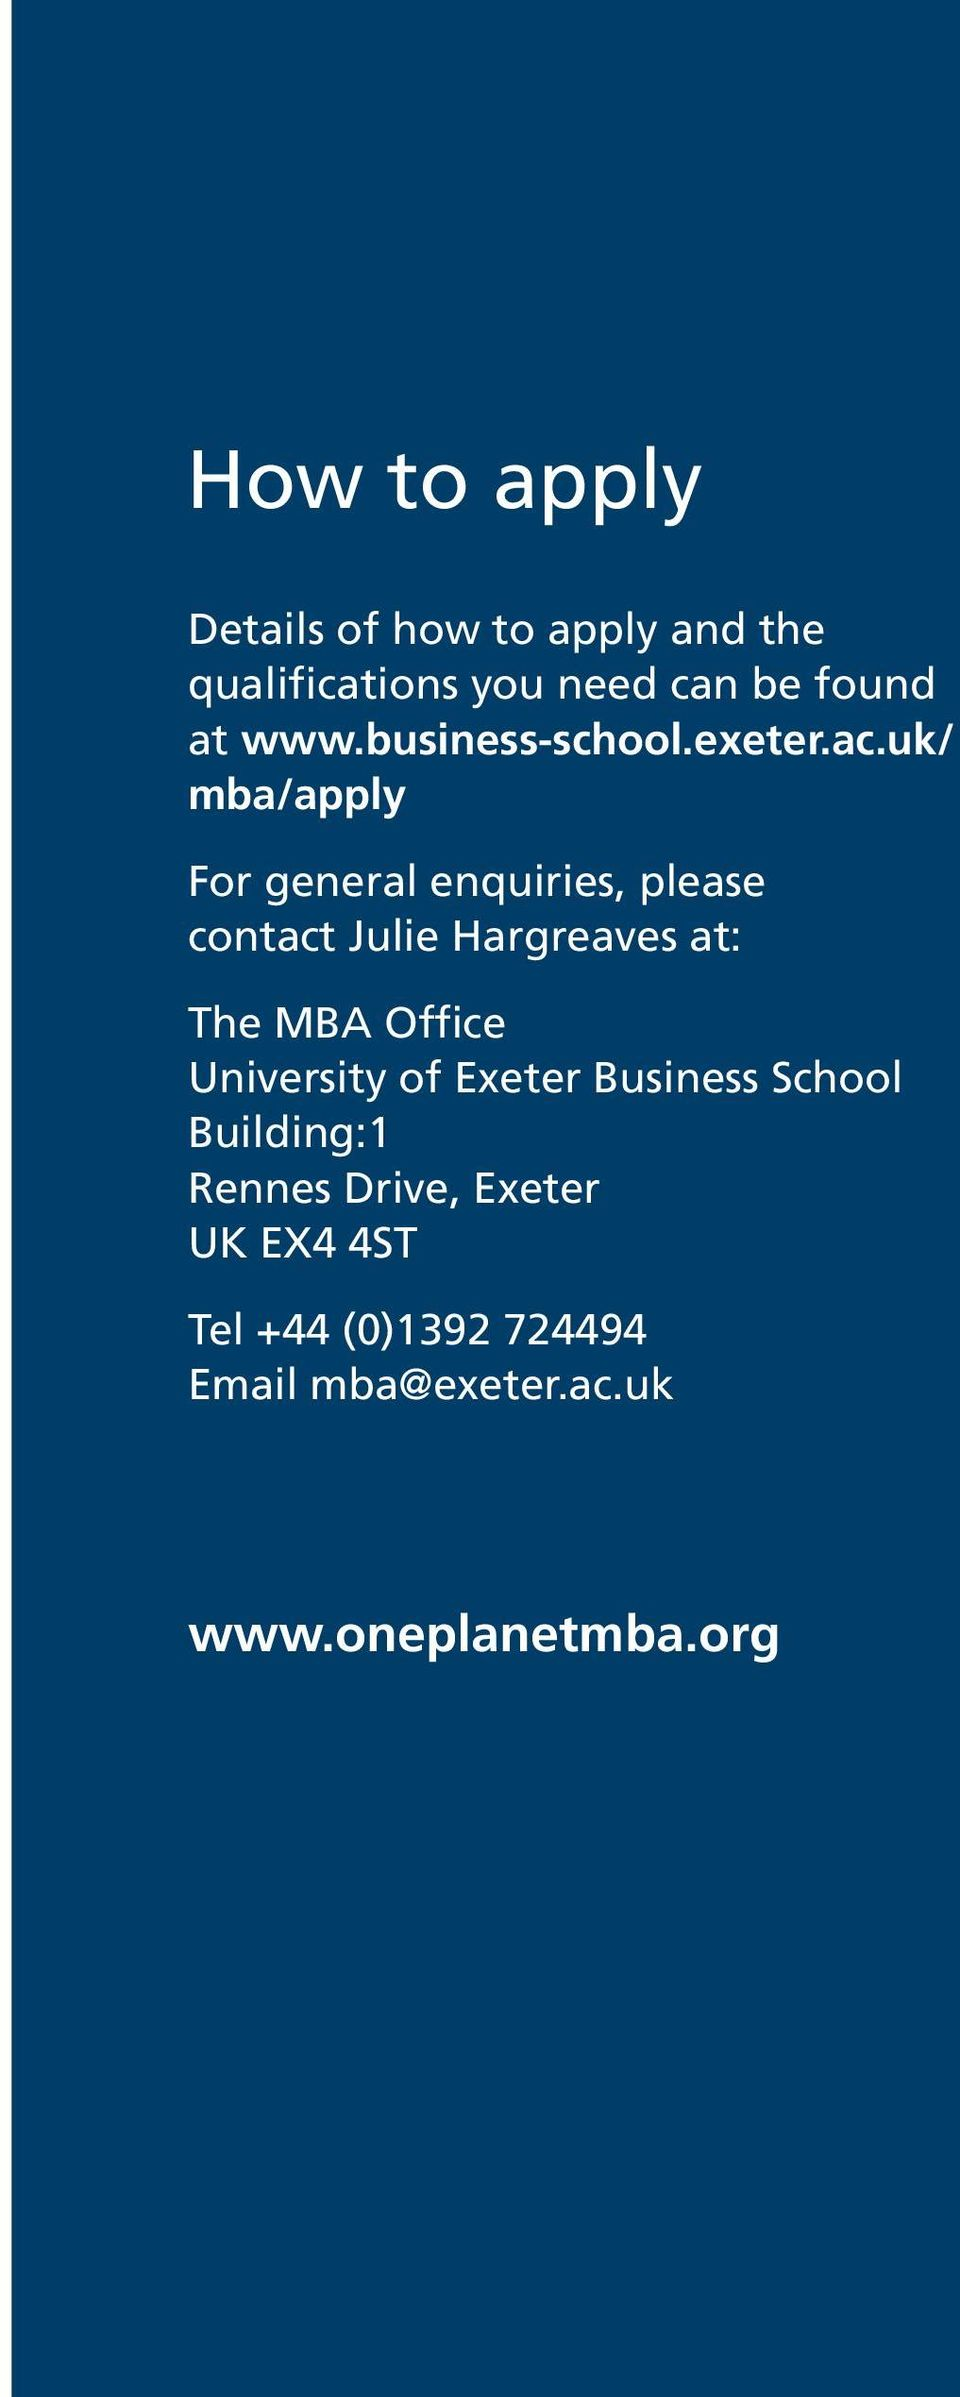 mba@exeter.ac.uk www.oneplanetmba.org I manage resources, just like many managers, but mine are physical, tangible, environmental resources.